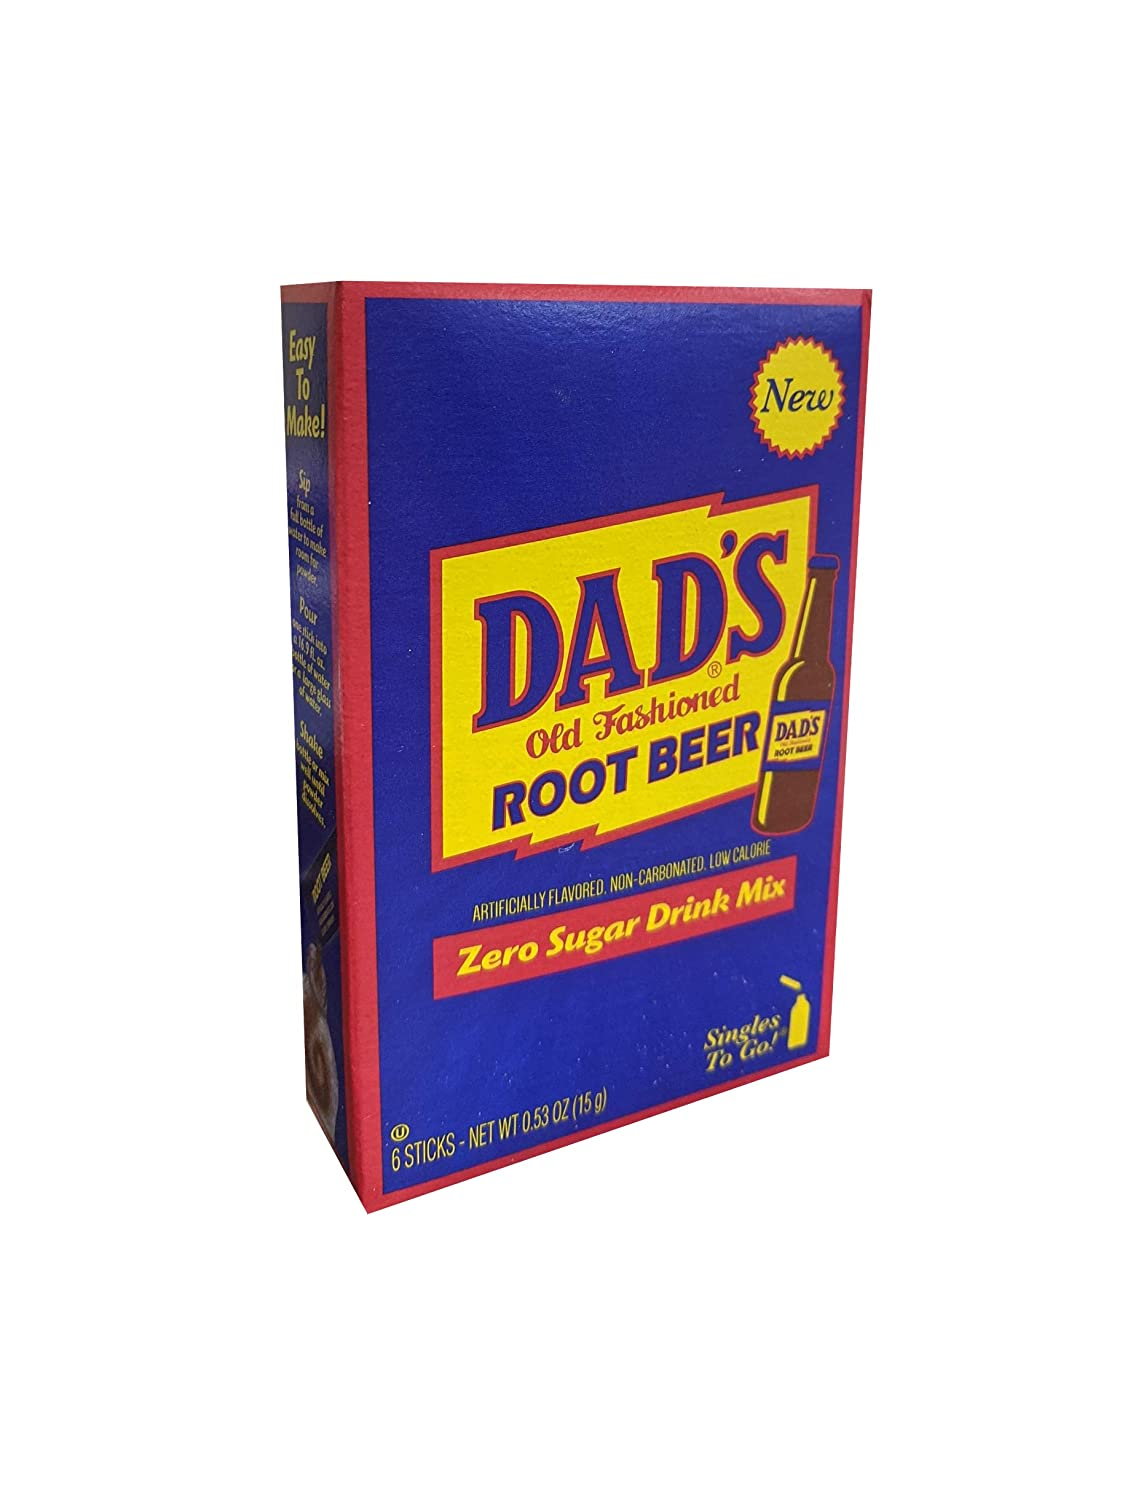 Dad's Old Fashion Rootbeer Singles To Go Drink Mix, 0.53 OZ, 6 CT (3)